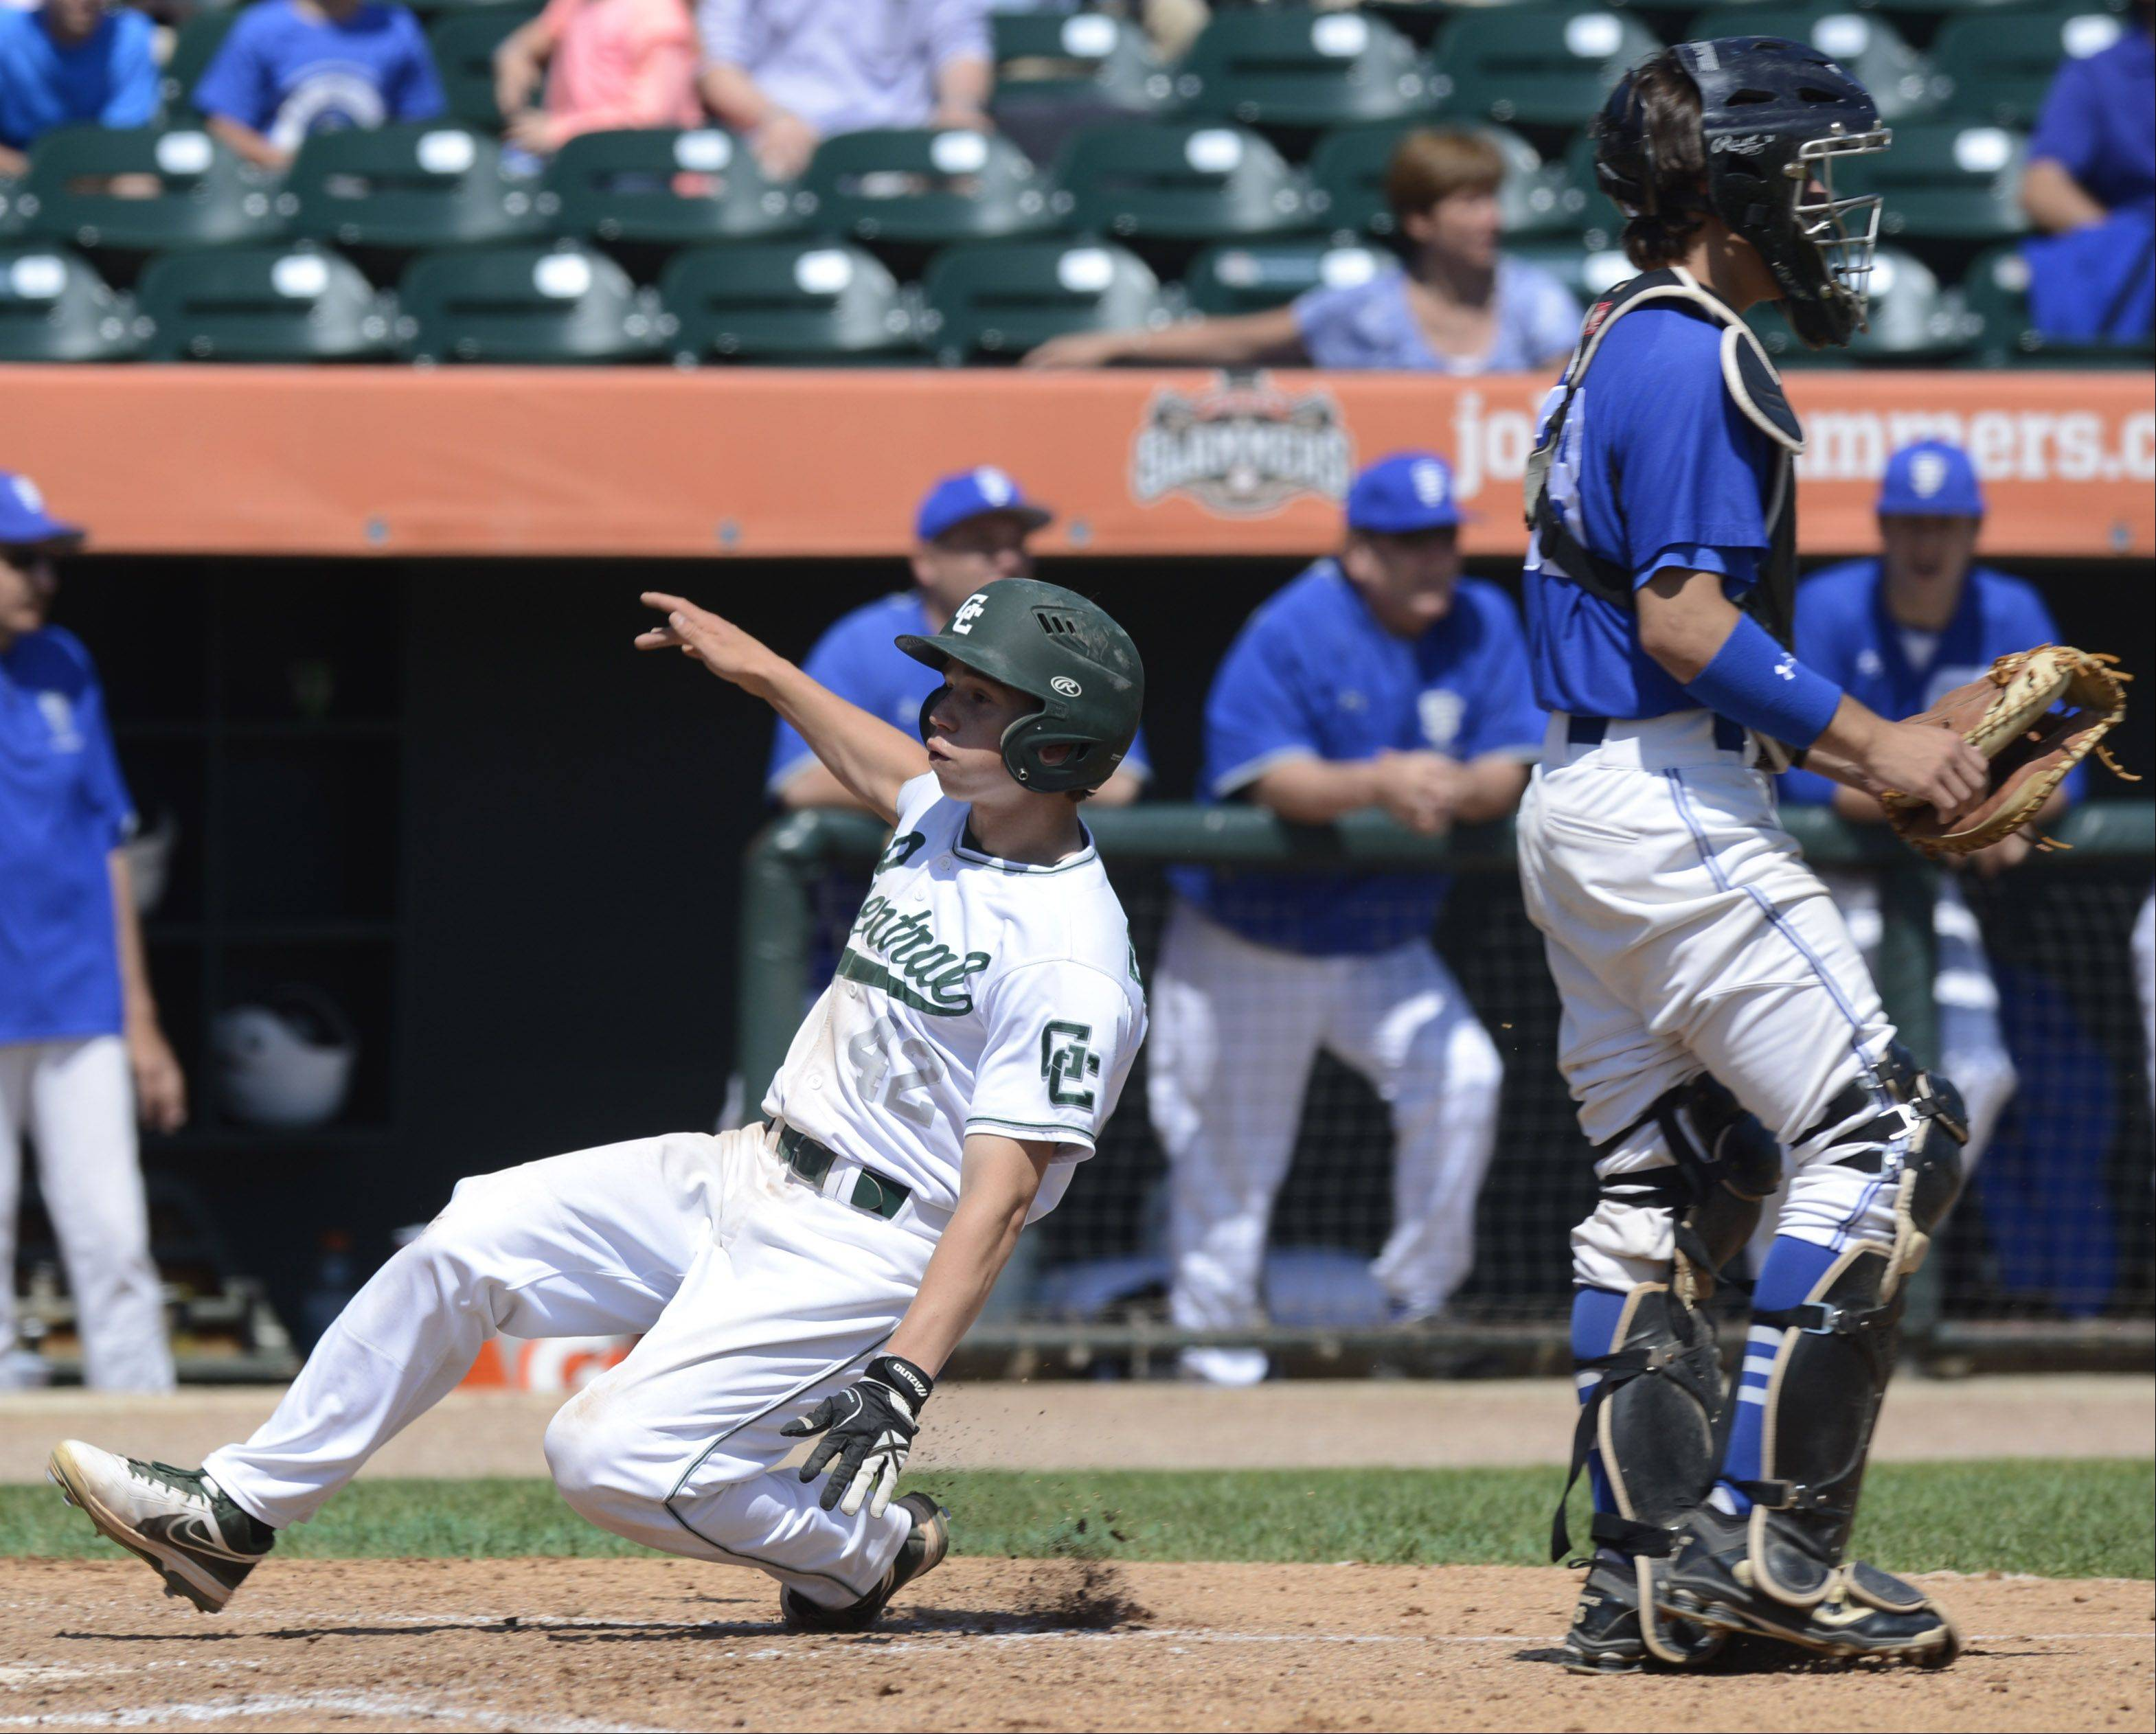 Grasylake Central's Ryan Fontana scores the Ram's first run of the game without a play by St. Francis catcher Brett Jungles during the Class 3A state baseball tournament at Silver Cross Field in Joliet Friday.